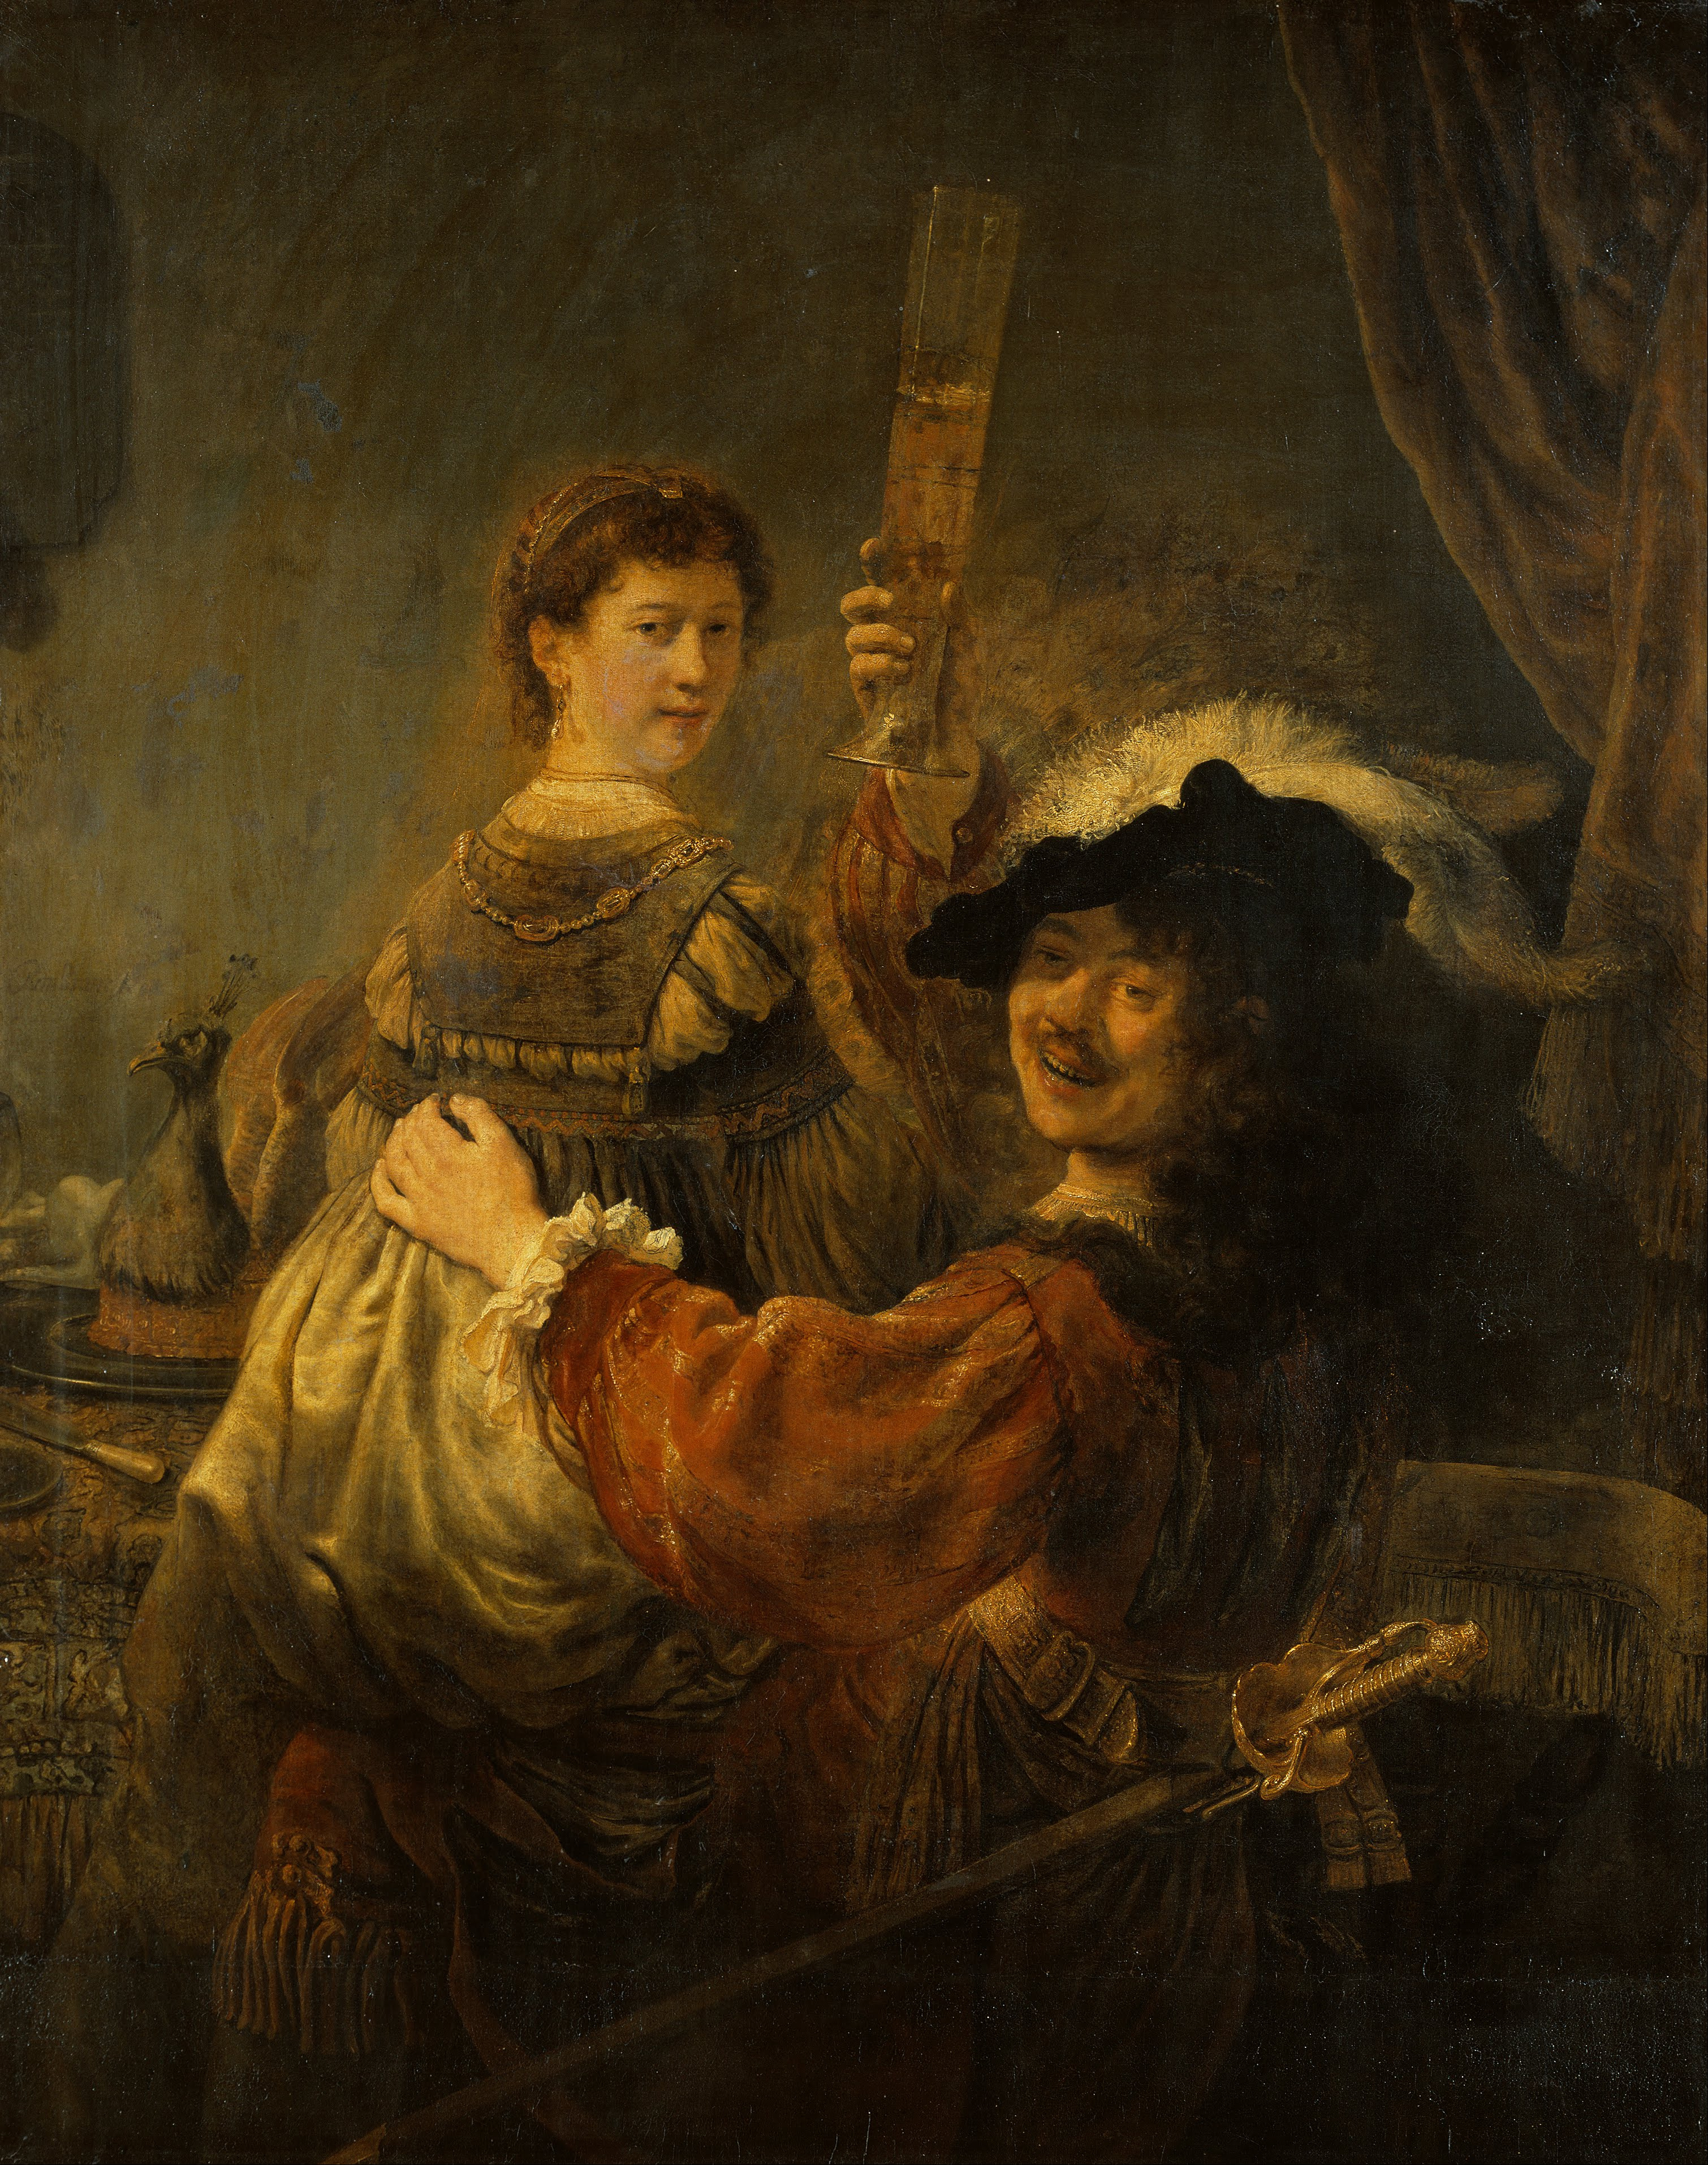 File Rembrandt Rembrandt And Saskia In The Scene Of The Prodigal Son Google Art Project Jpg Wikimedia Commons